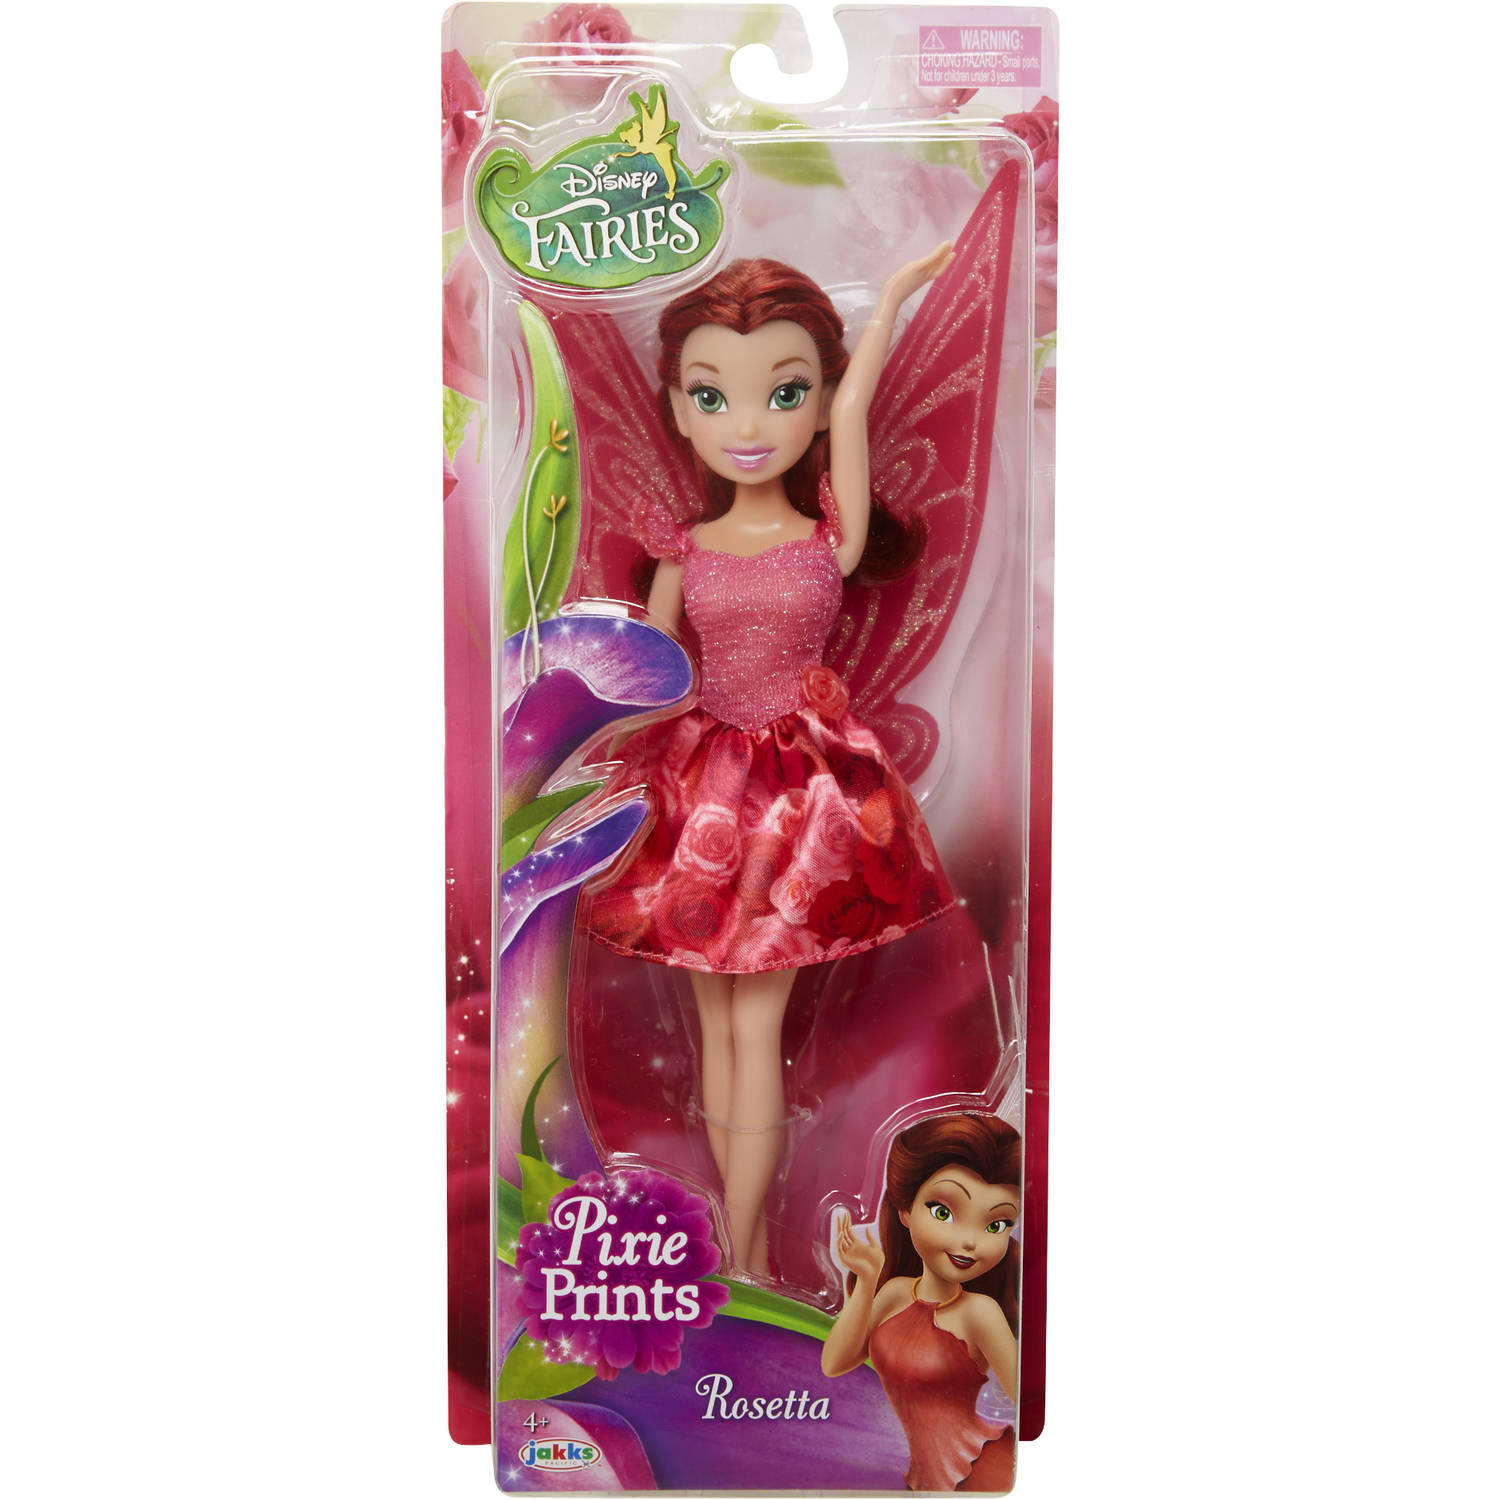 "Disney Fairy 9"" Rosetta Classic Fashion Doll, Floral"